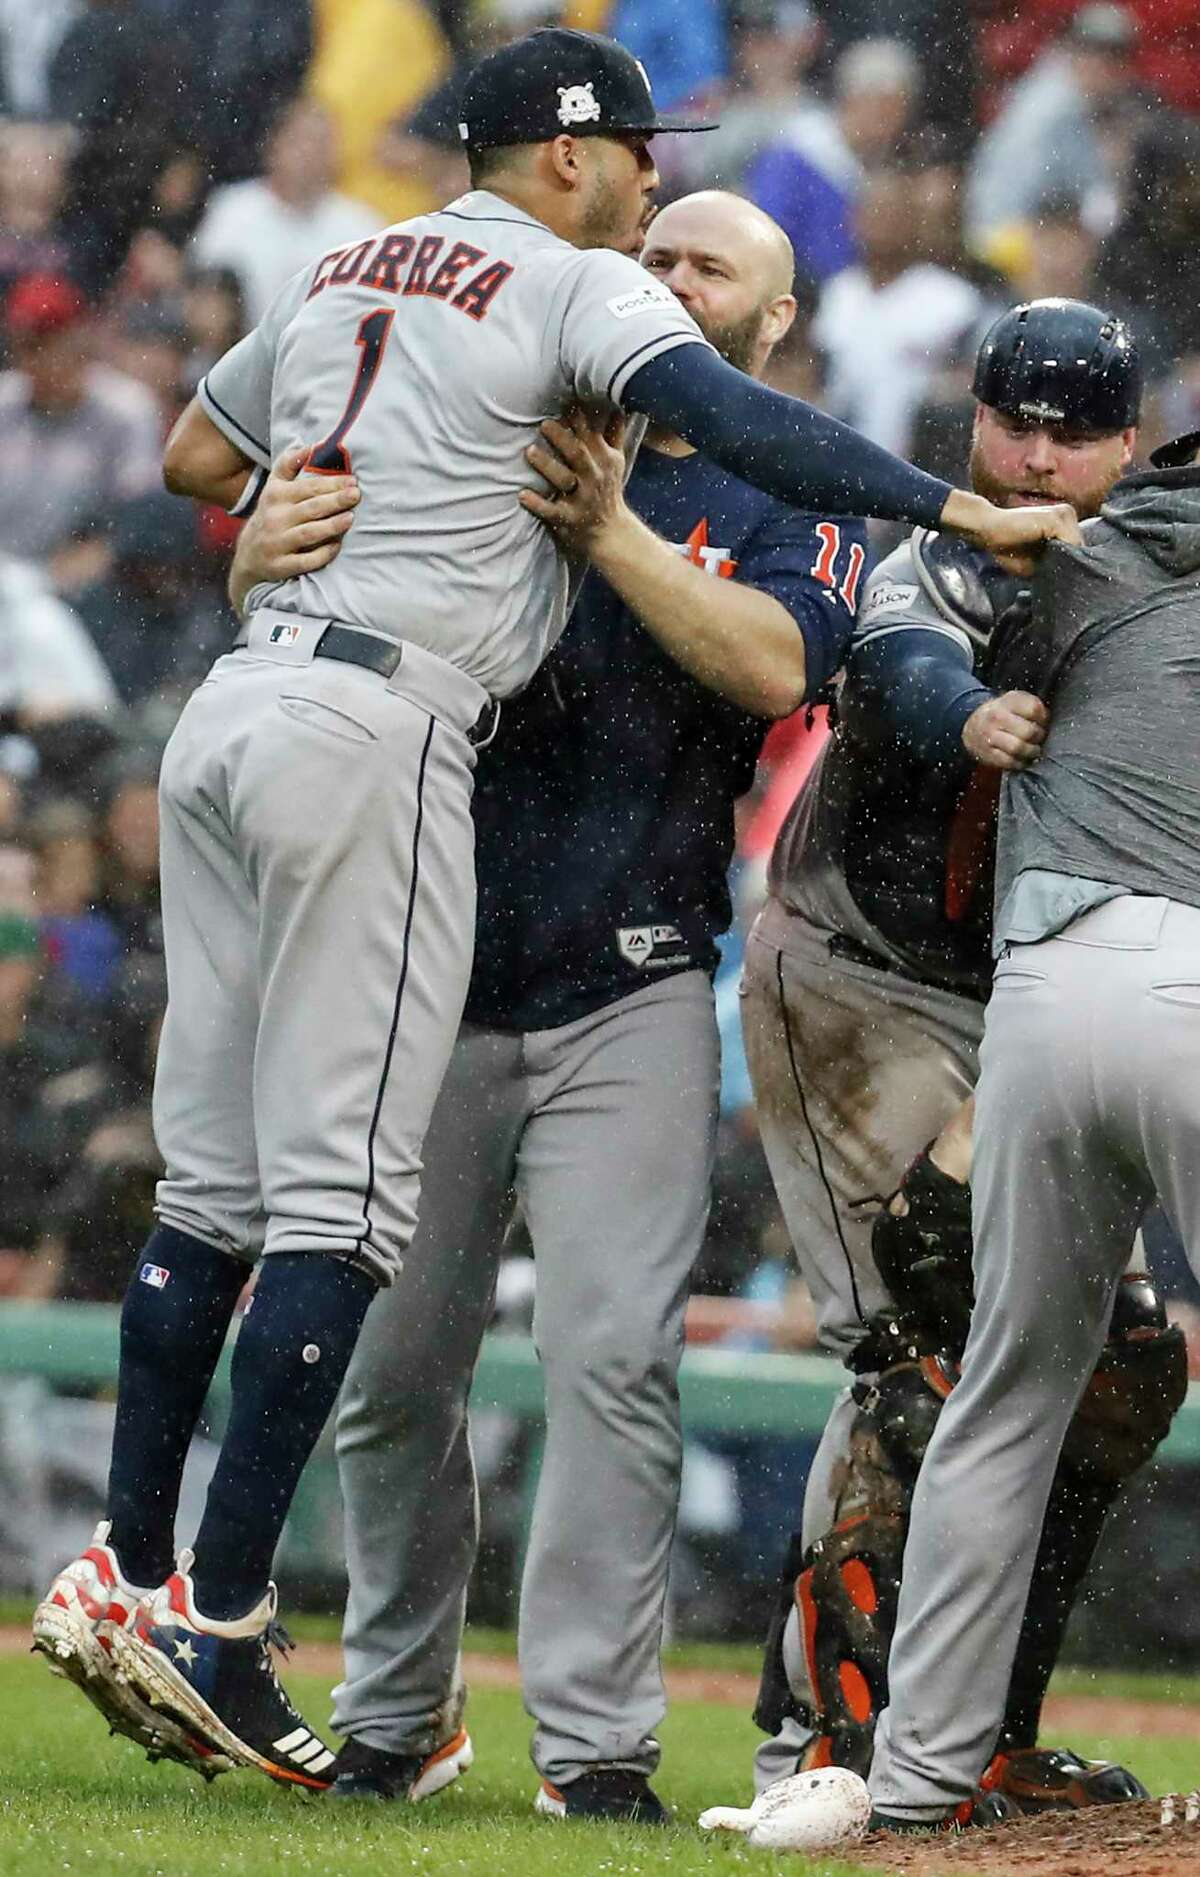 Houston Astros shortstop Carlos Correa (1), designated hitter Evan Gattis (11) and catcher Brian McCann (16) celebrate the Astros 5-4 win over the Boston Red Sox in Game of the ALDS at Fenway Park on Monday, Oct. 9, 2017, in Boston. The Astros won the series 3-1.